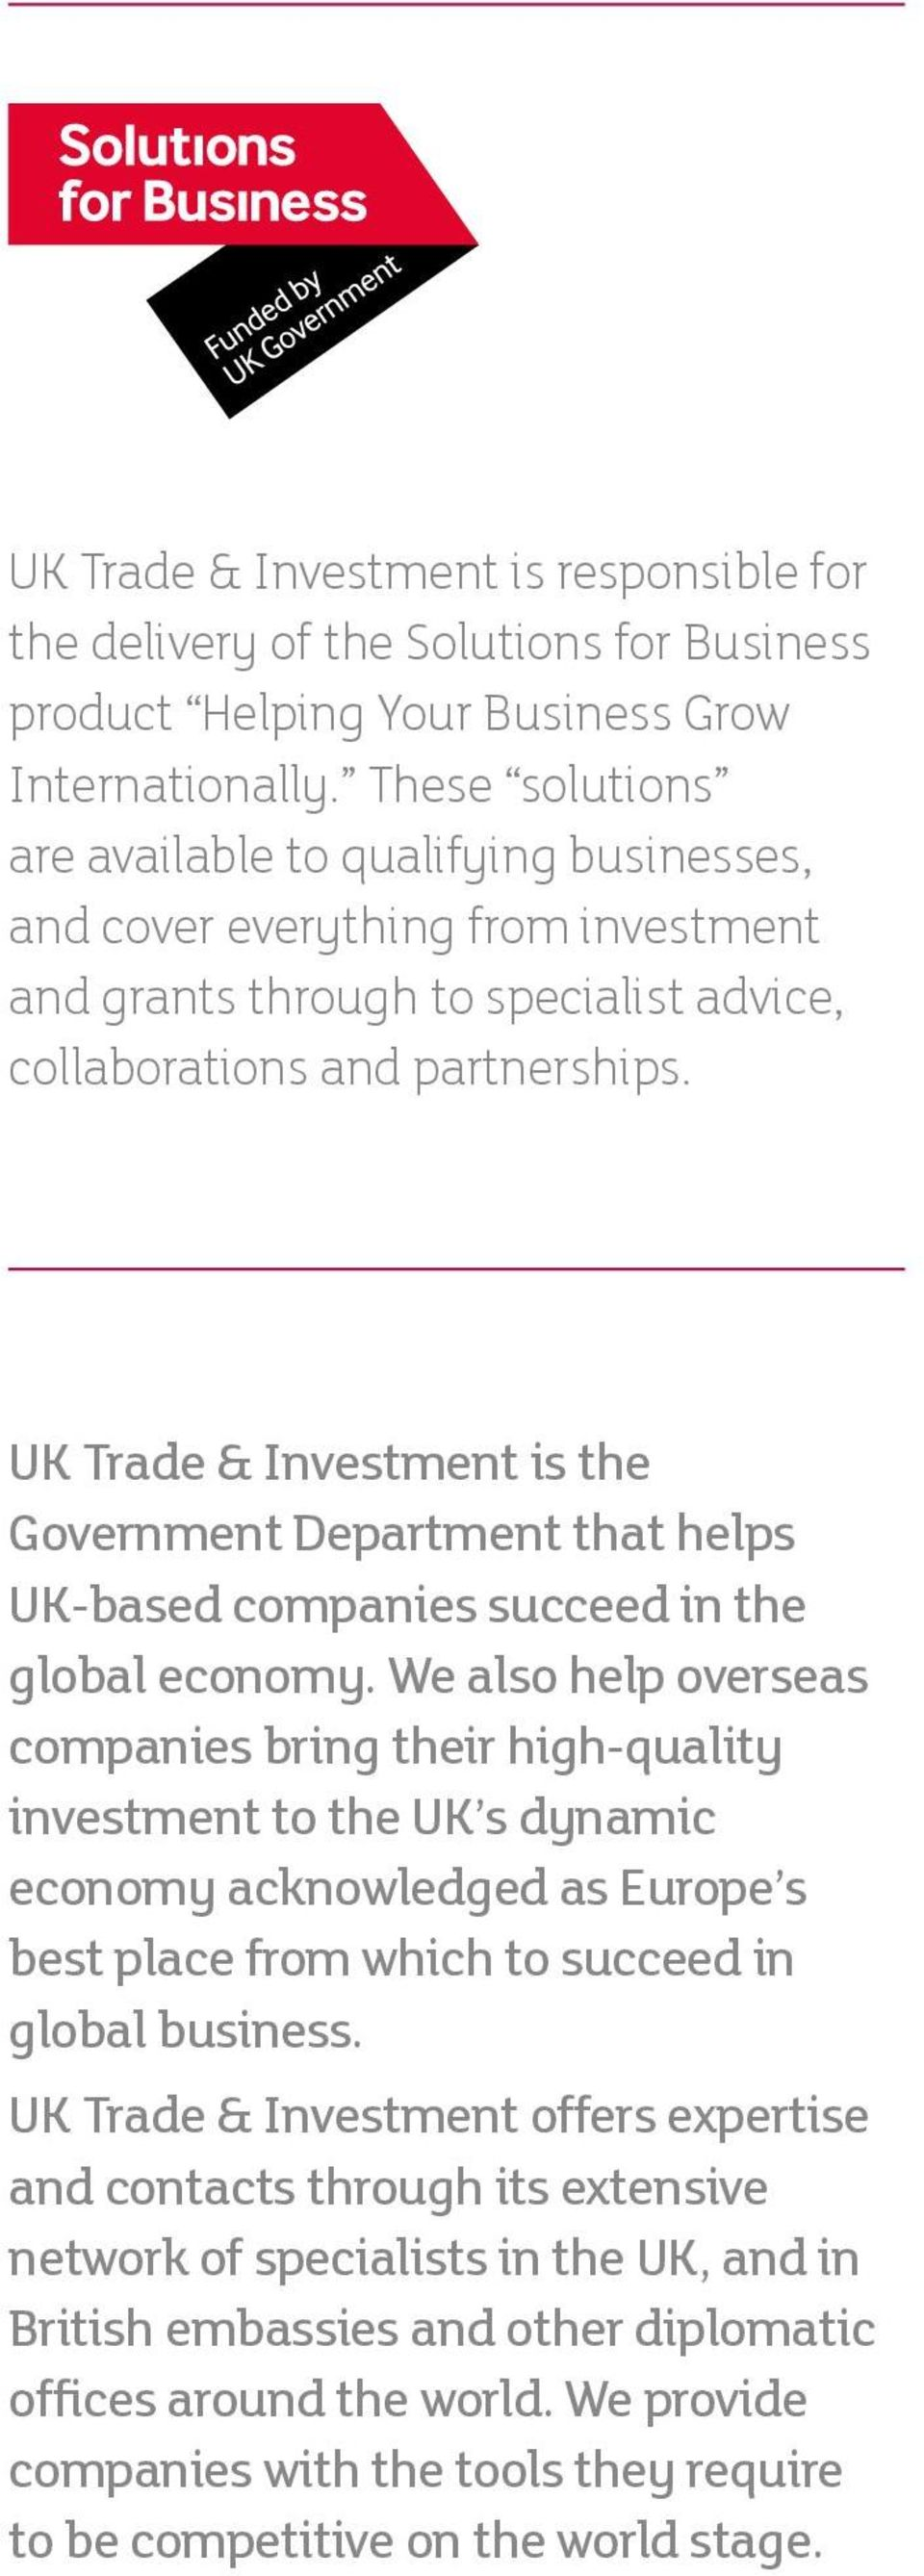 UK Trade & Investment is the Government Department that helps UK-based companies succeed in the global economy.